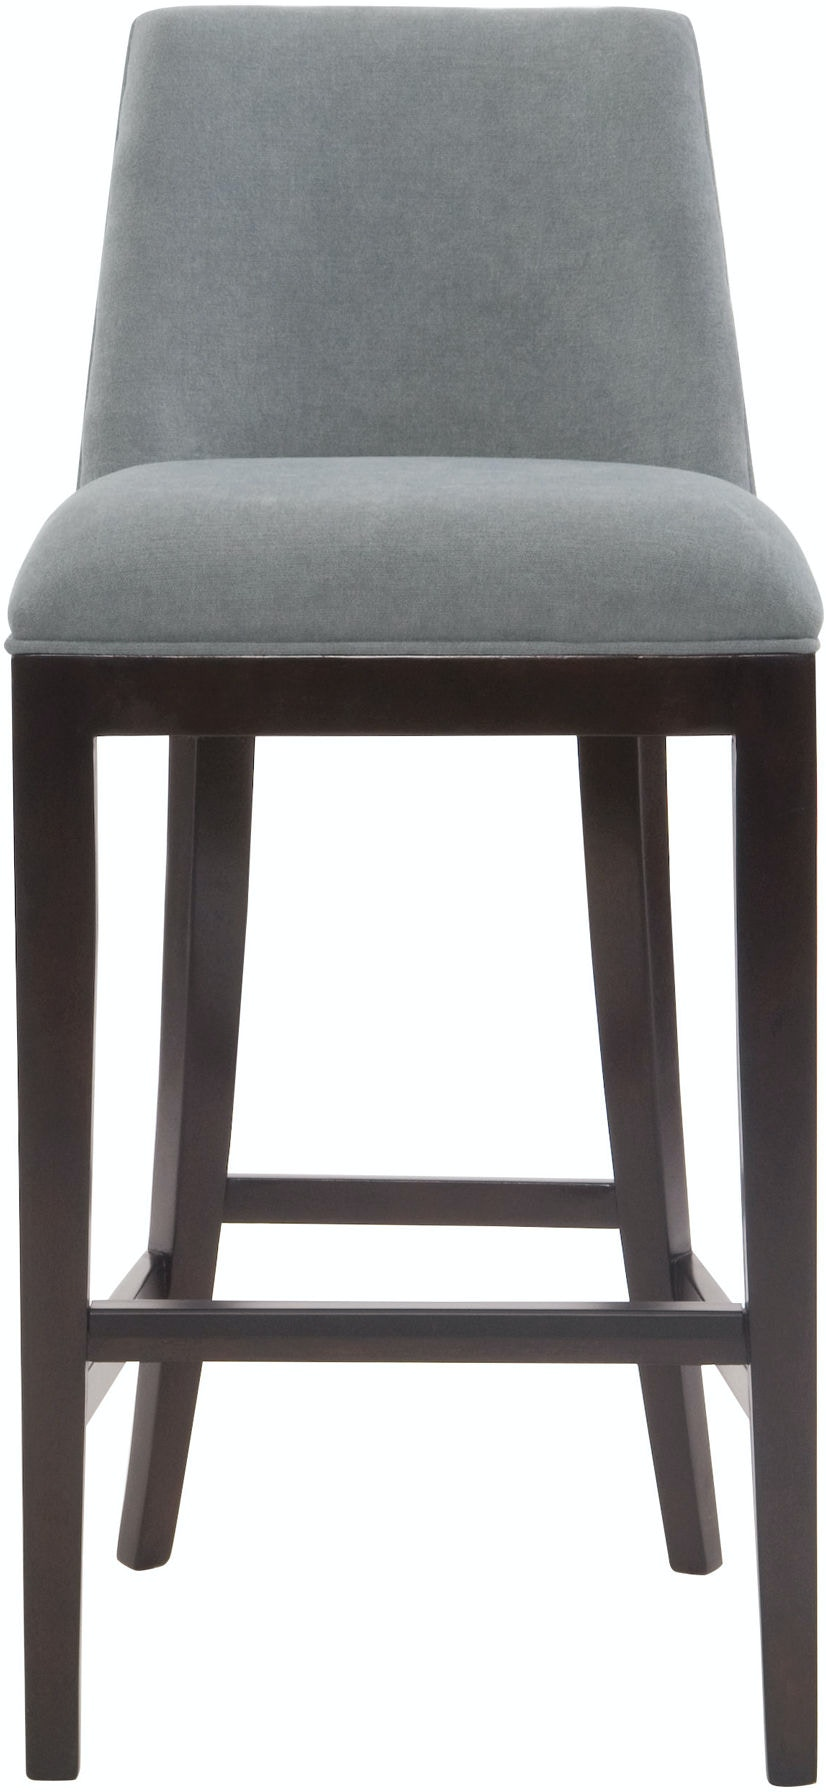 Bernhardt Interiors Bar And Game Room Bar Stool 353 584